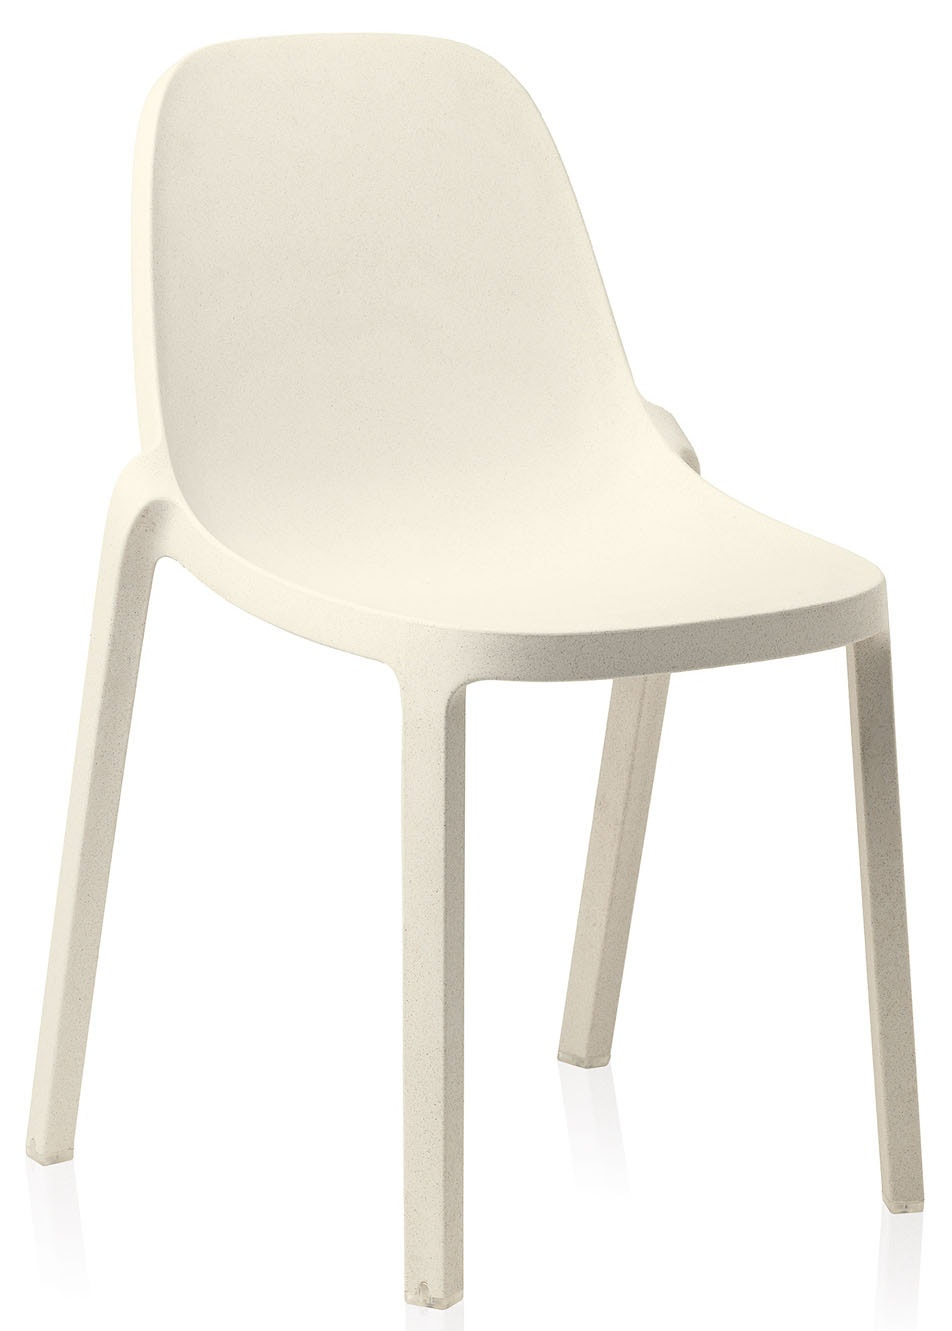 Emeco Broom Chair Priced Each Sold In Sets Of 2 Gr